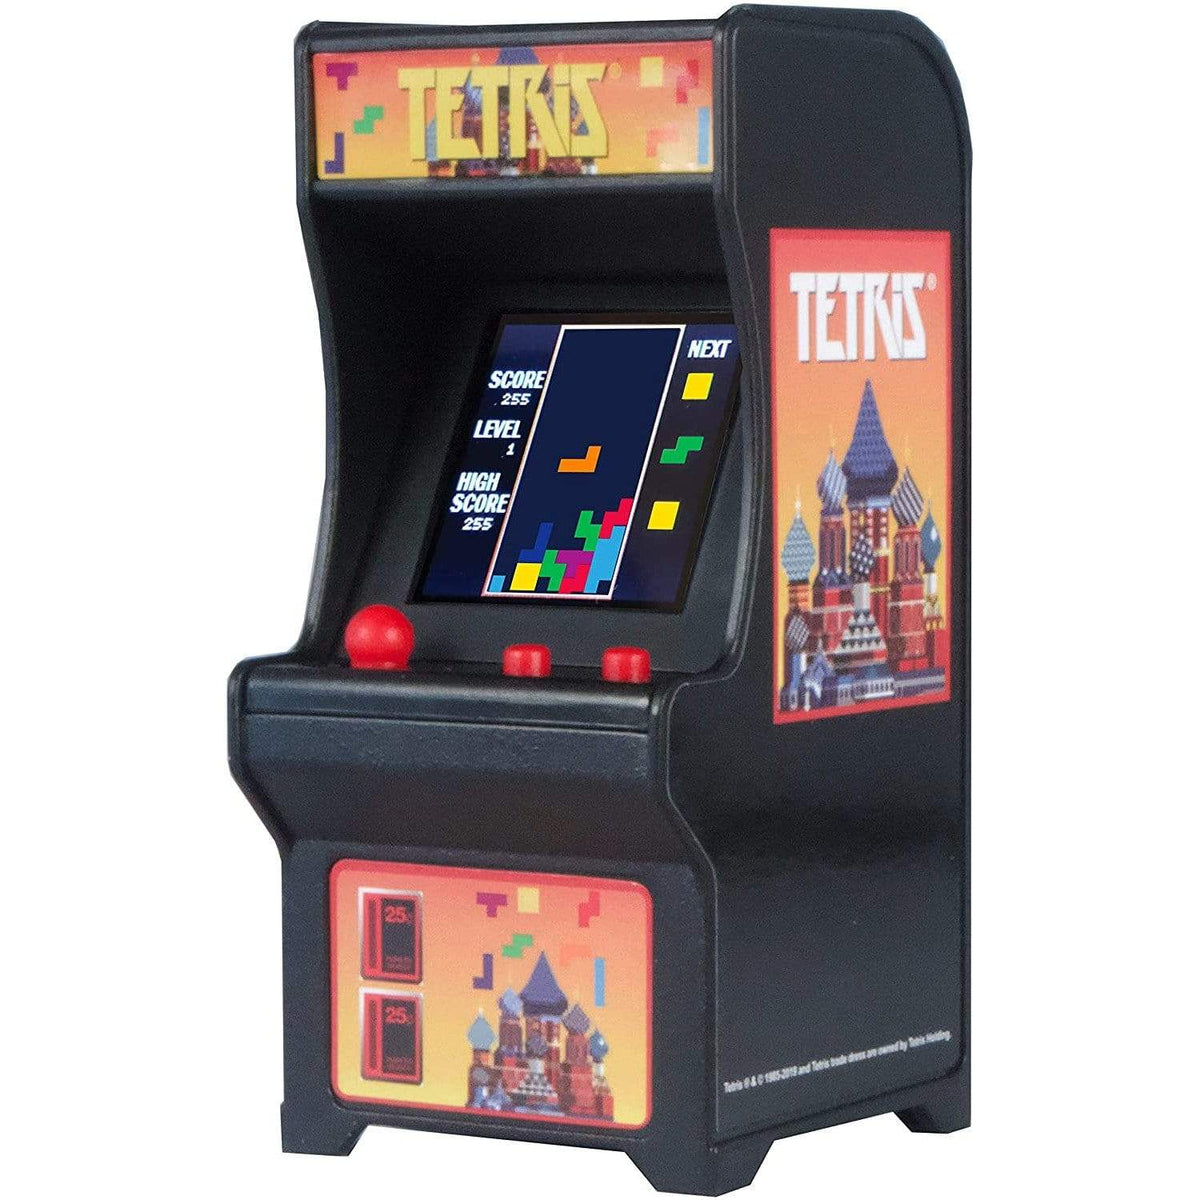 Tiny Arcade: Tetris Super Impulse Tech Stuff